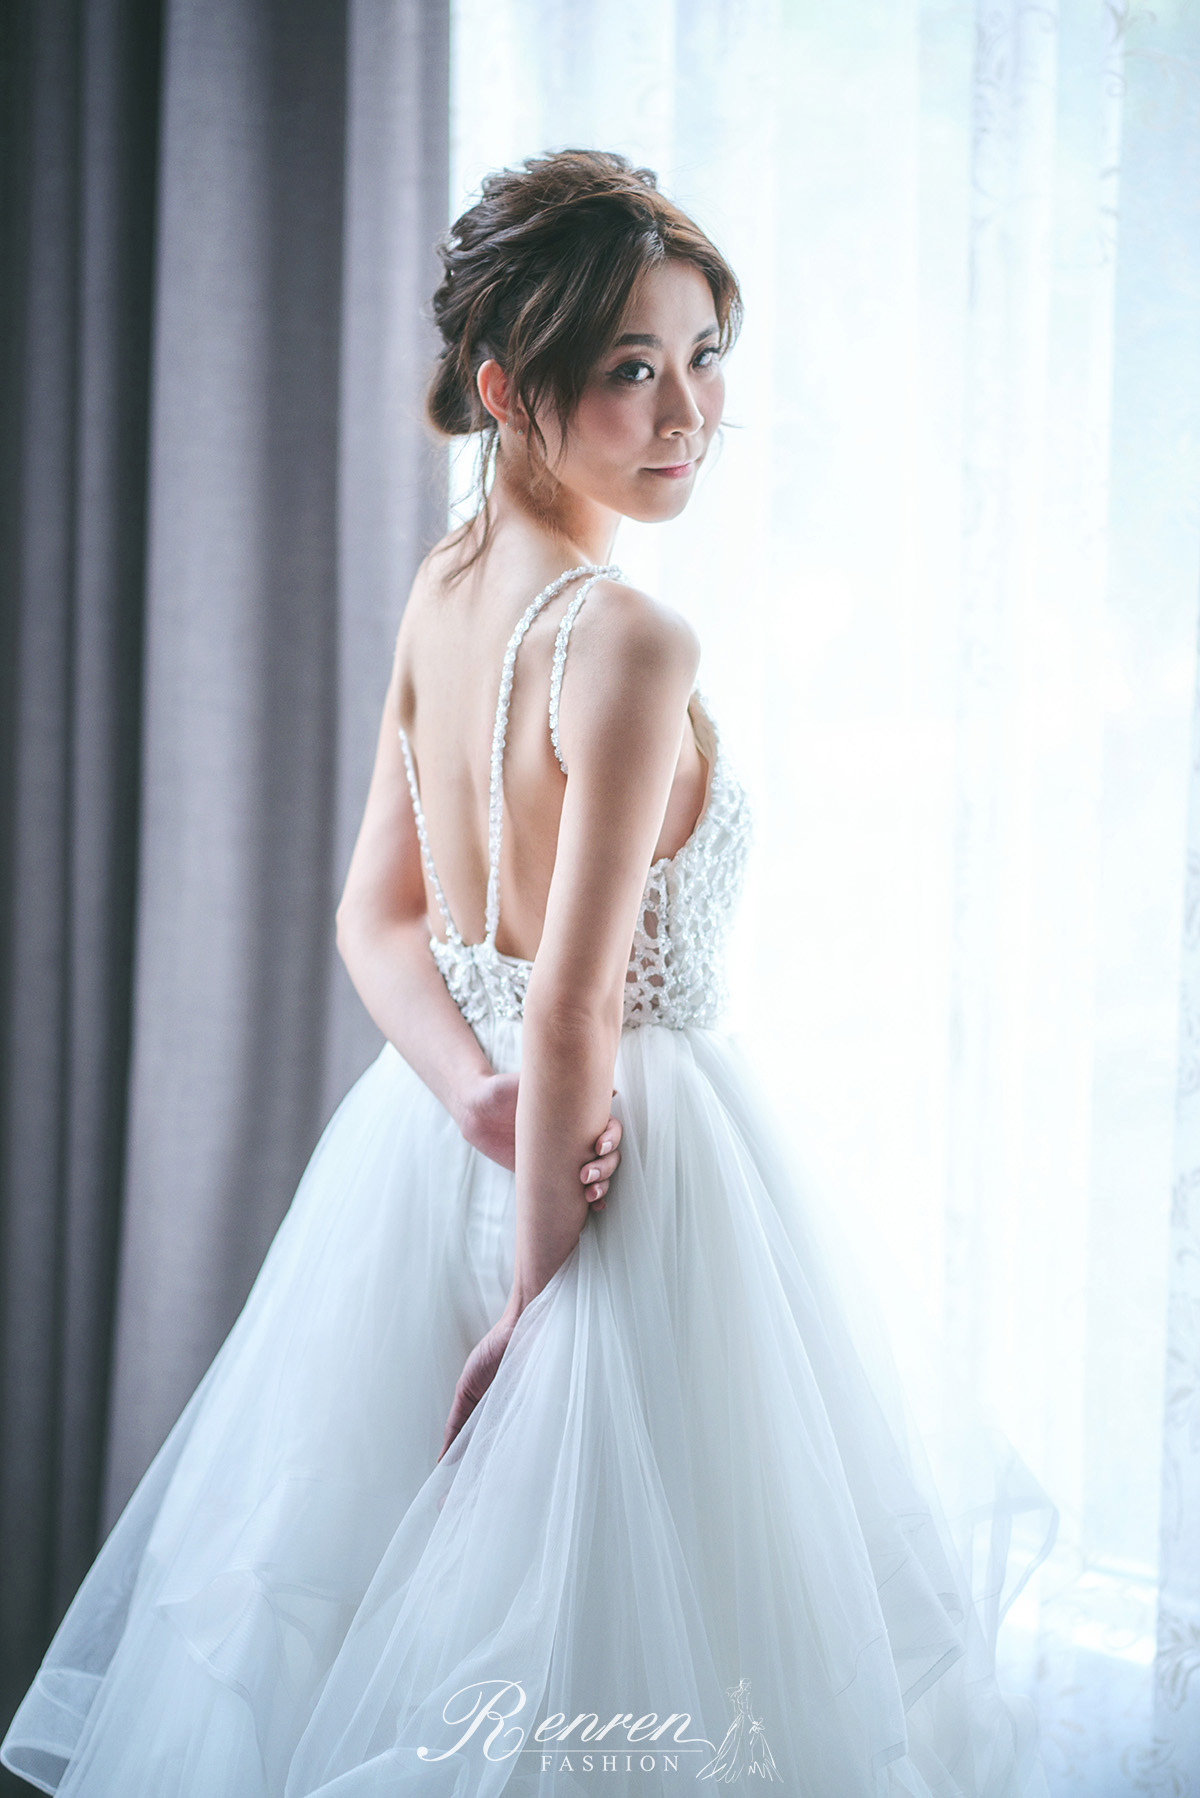 RenRen-Mundo-StylistMei-Wedding-慕朵-冉冉婚紗-02